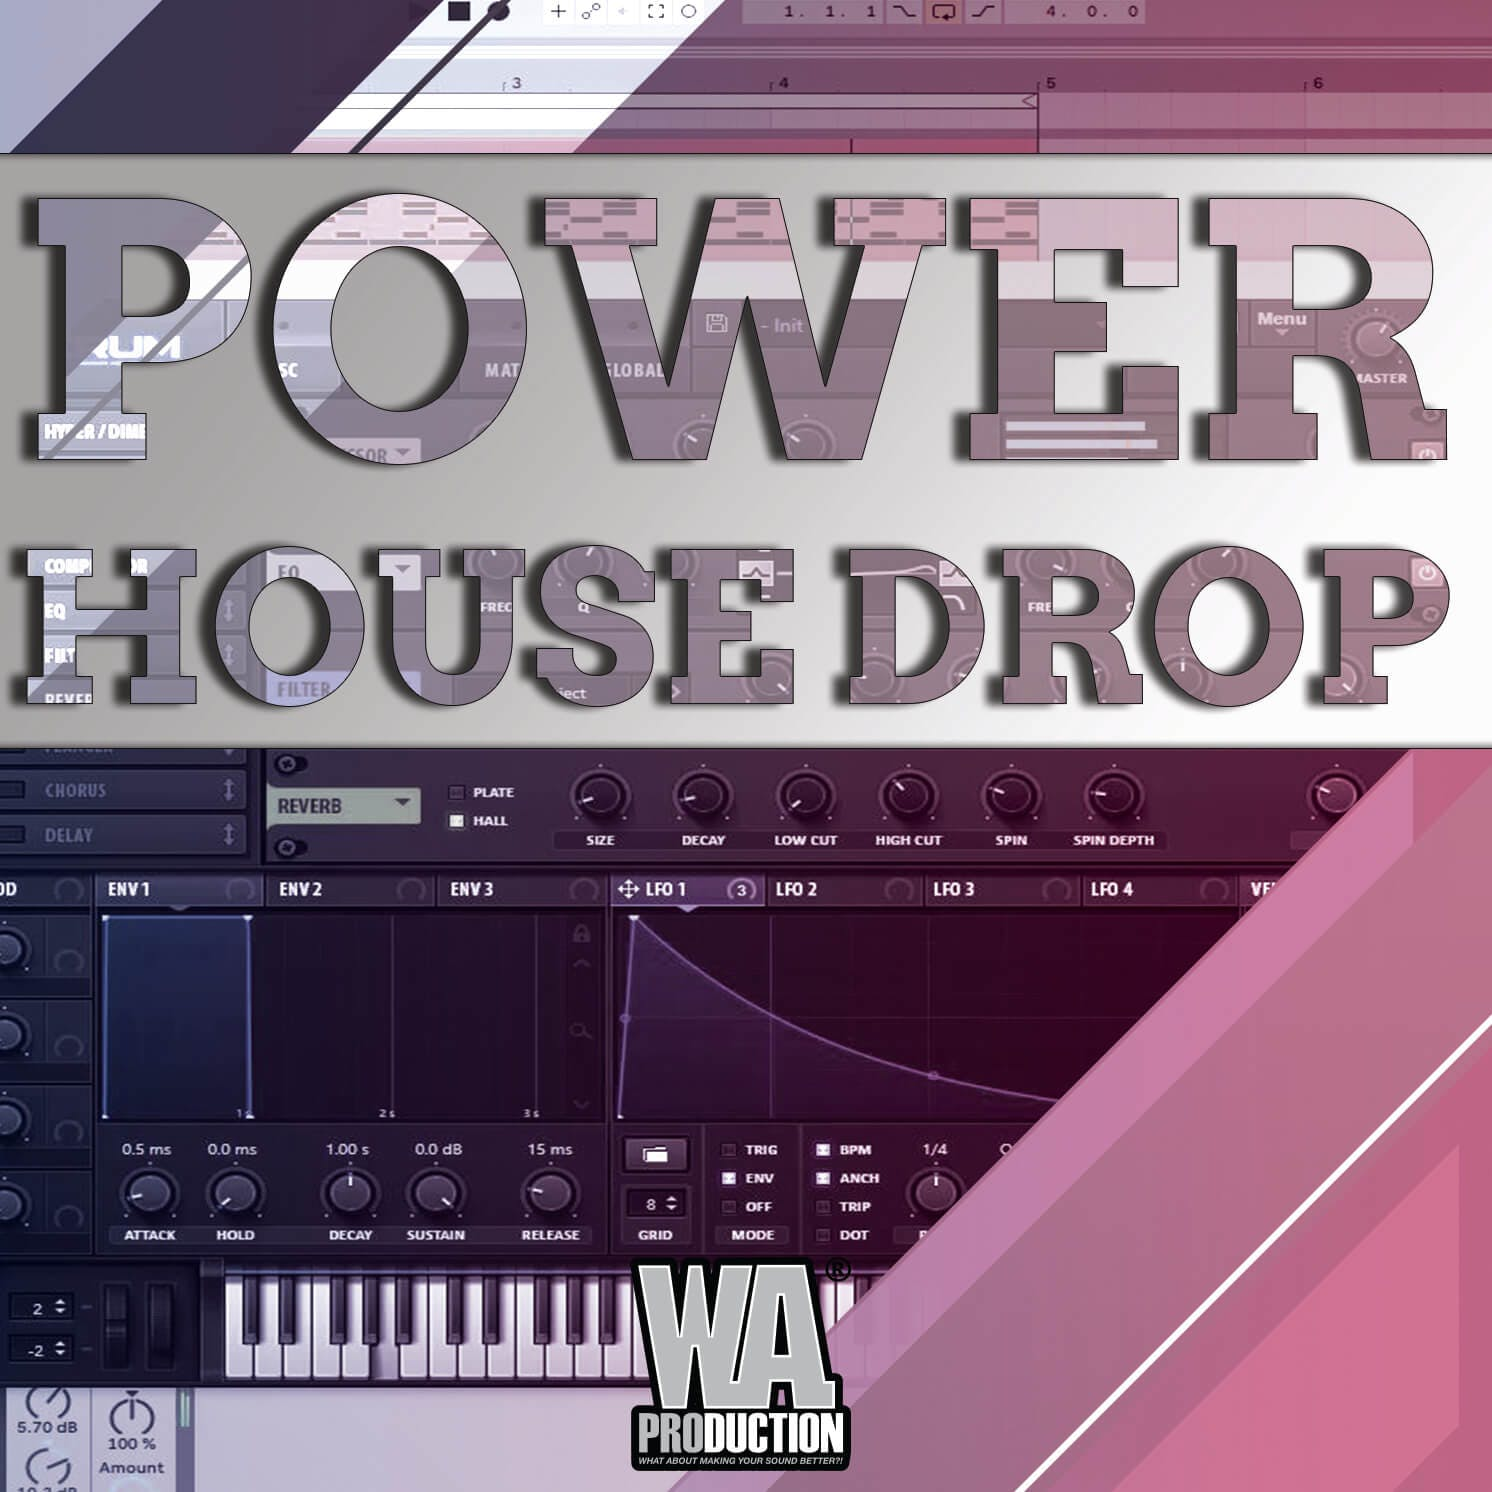 Making Power House Drop